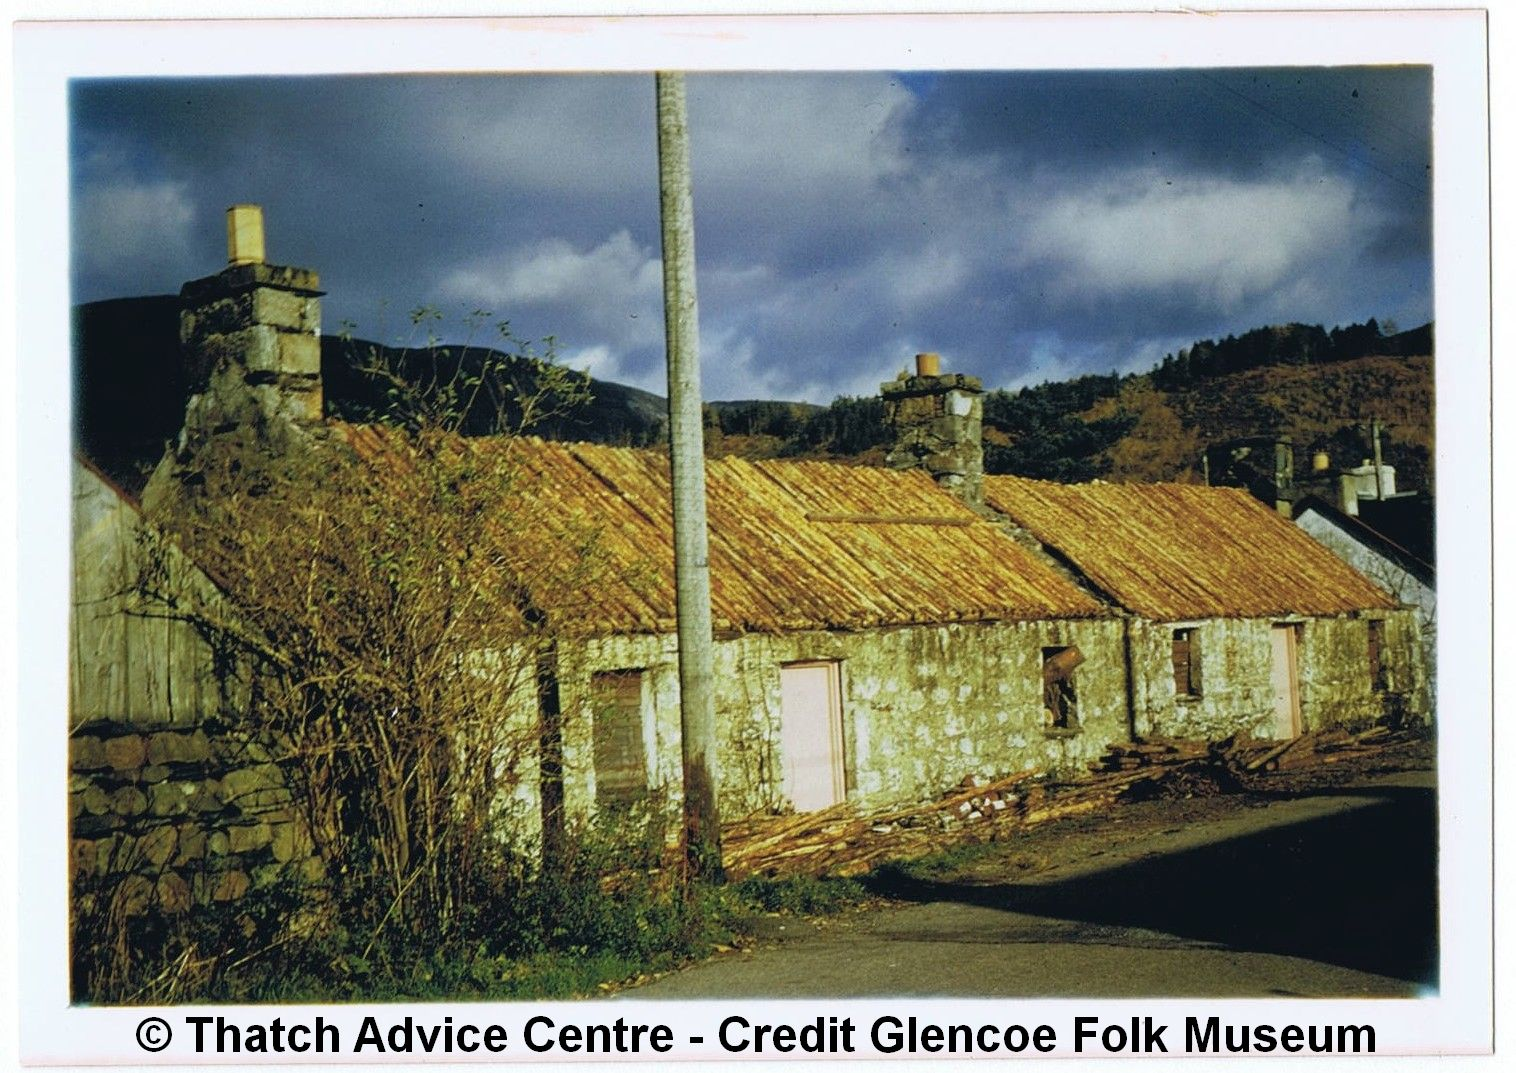 Visit Glencoe Folk Museum With Its Heather Thatch Thatch